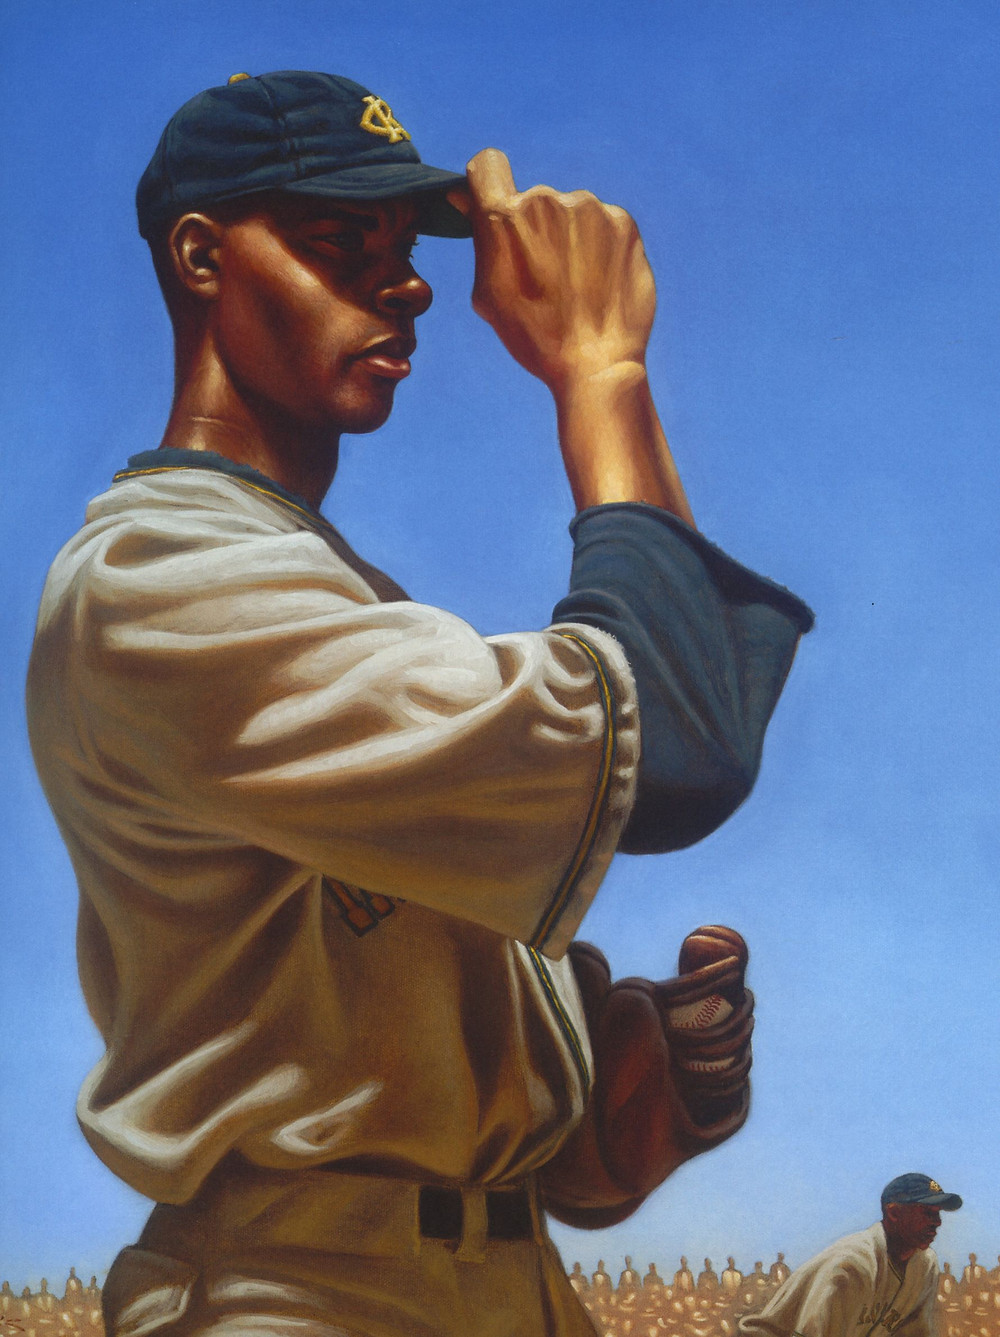 Hilton Smith by Kadir Nelson